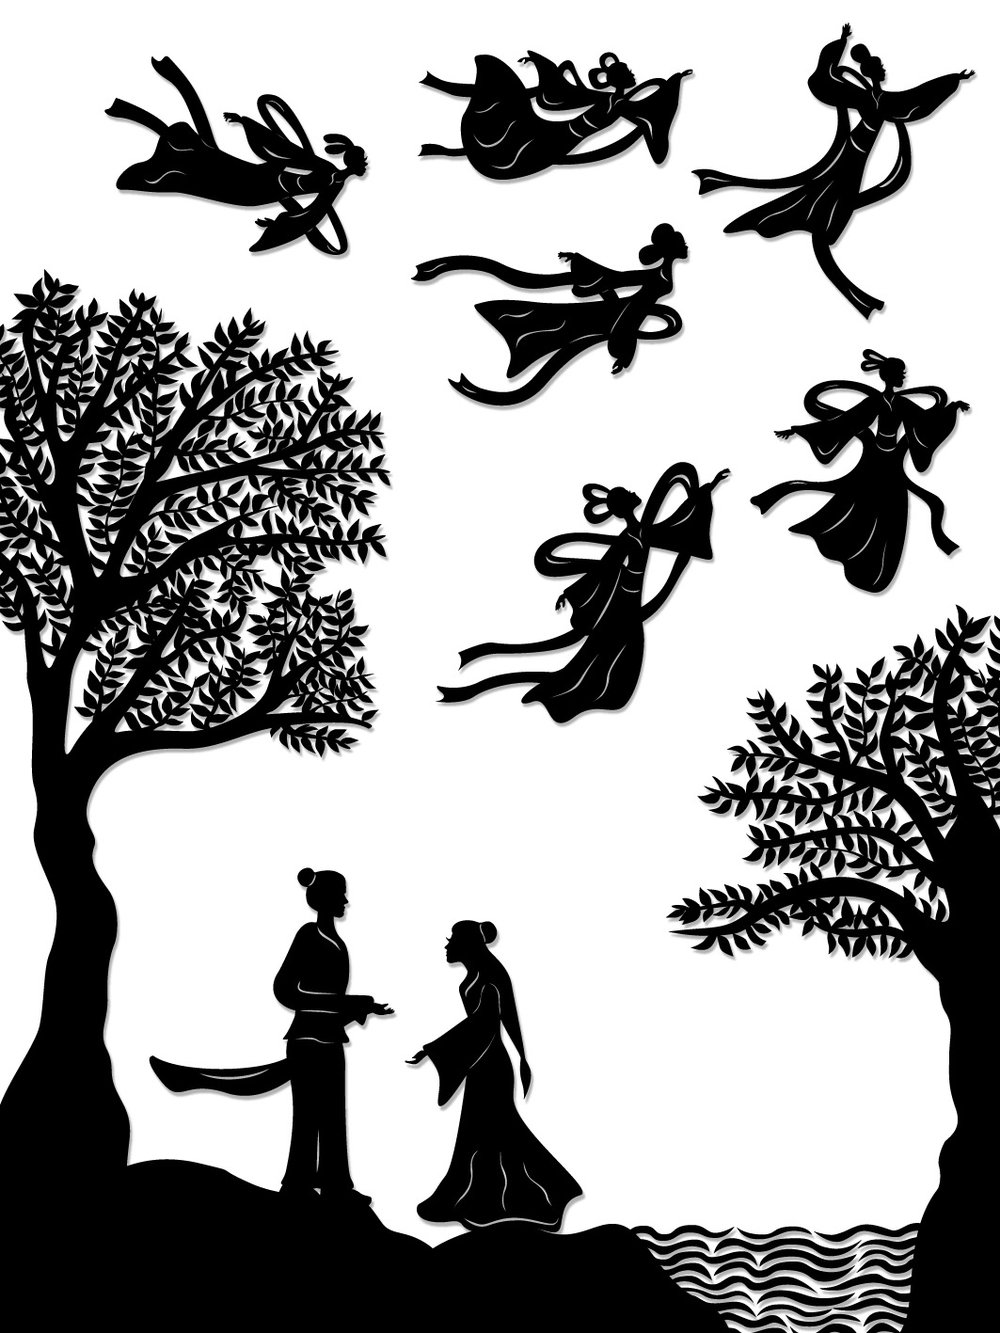 The Cowherd & the Weaving Maiden : The weaving maiden is stranded as her fairy sisters fly away